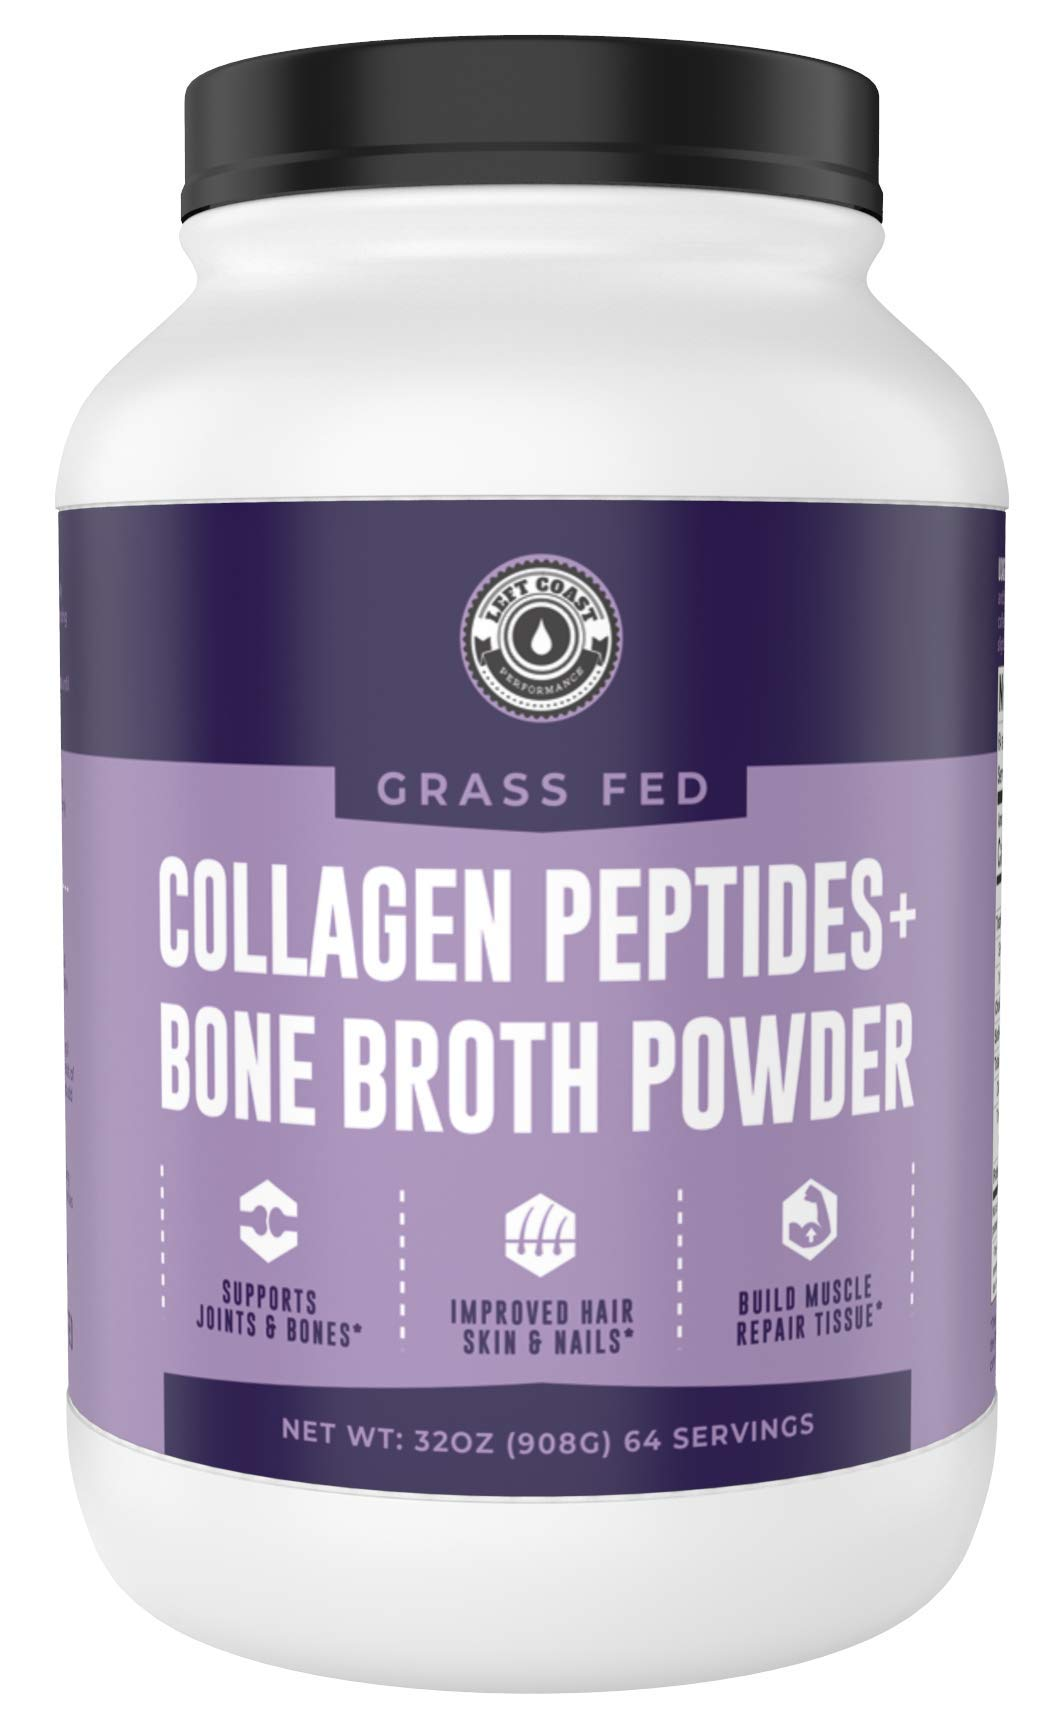 Collagen Bone Broth Powder 2lb, Bone Broth with Grass Fed Collagen Peptides. Unflavoured, Grass Fed, Hydrolyzed Beef, Zero Carb, Dairy Free Protein Powder. 64 Servings, by Left Coast Performance